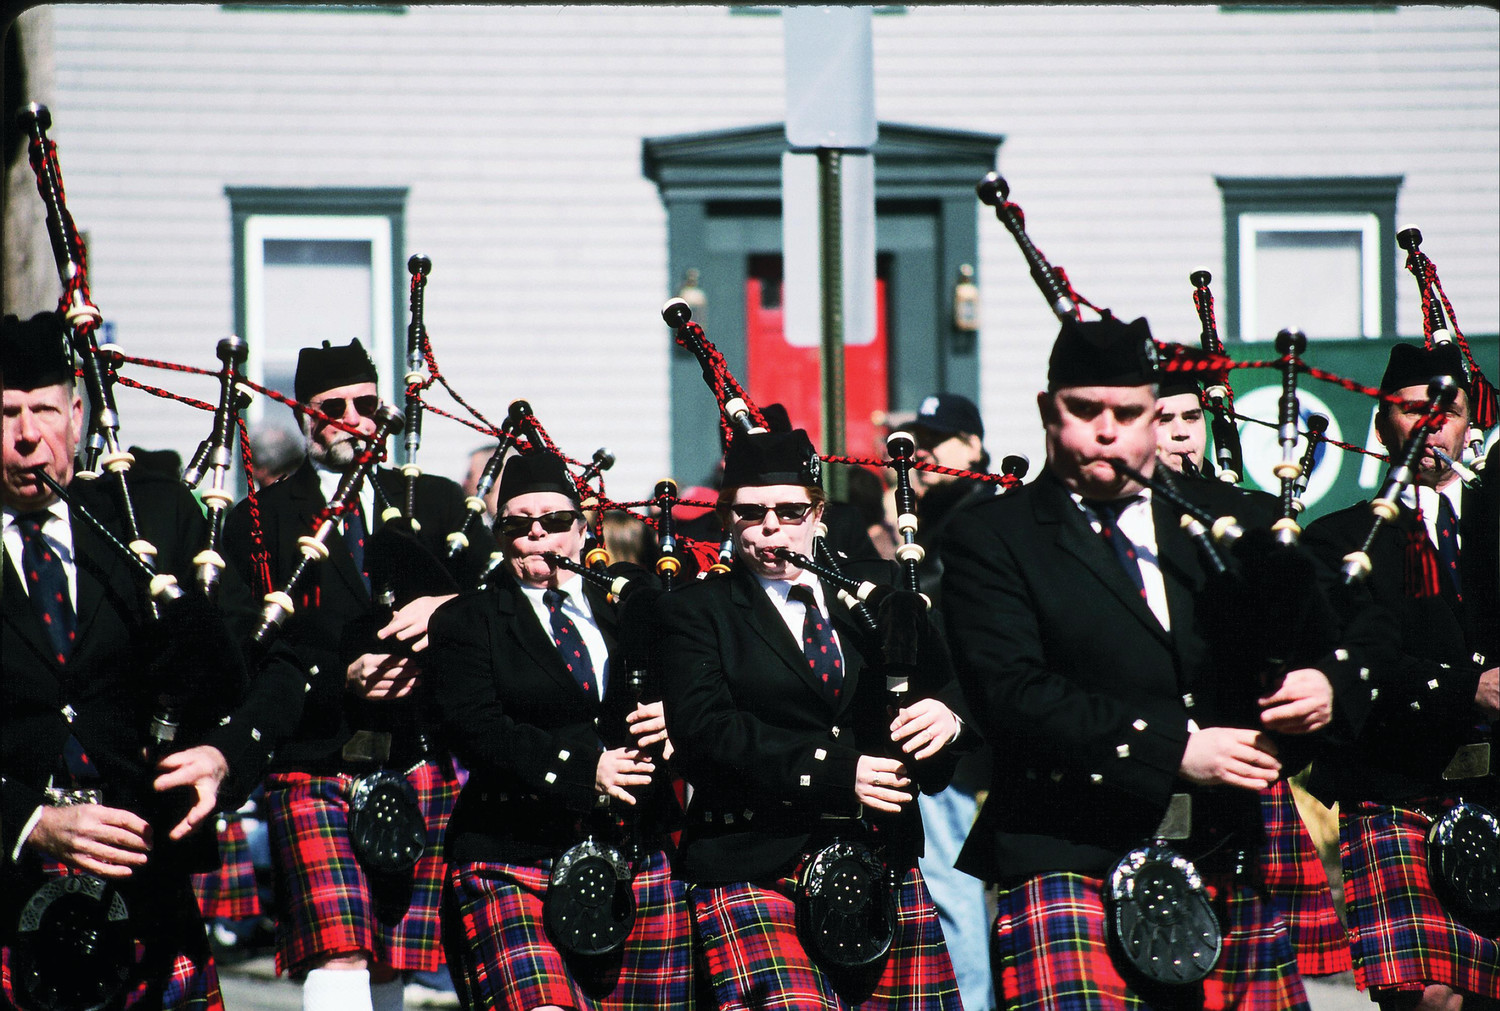 March 17: The Newport St. Patrick's Day Parade steps off from Newport City Hall at 11am